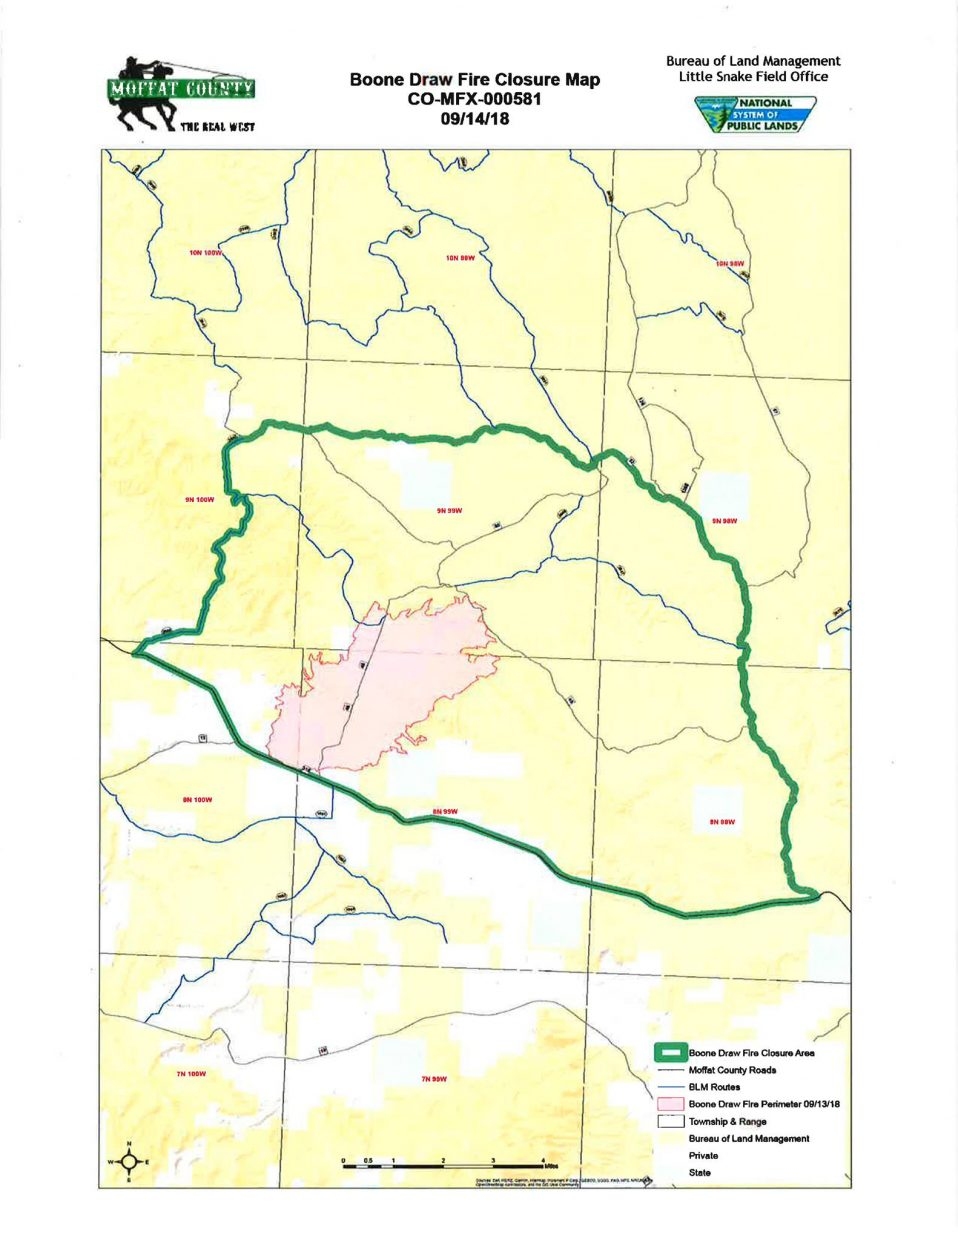 Fires Colorado Map.Northwest Colorado Fire Management Unit Now Managing Boone Draw Fire